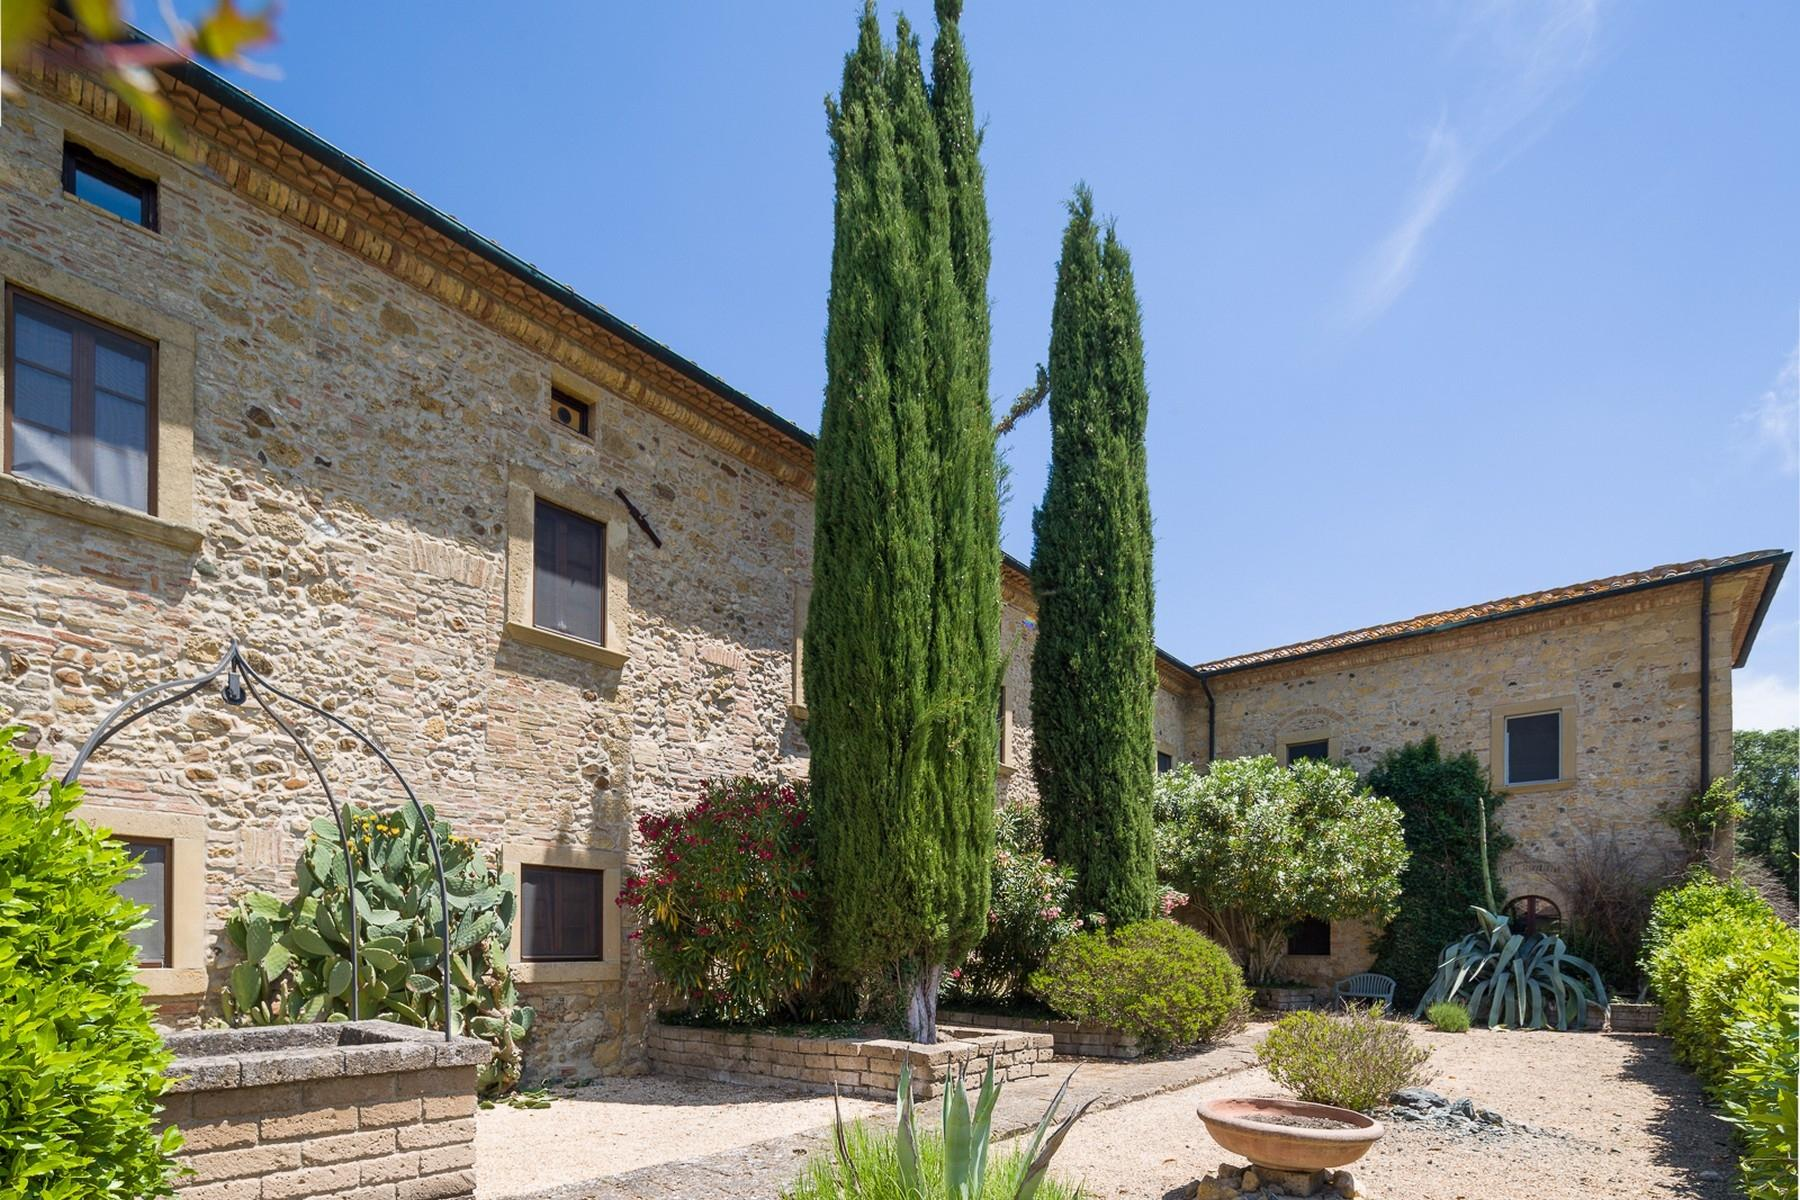 Beautiful countryhouse in the heart of the Etruscan land - 5